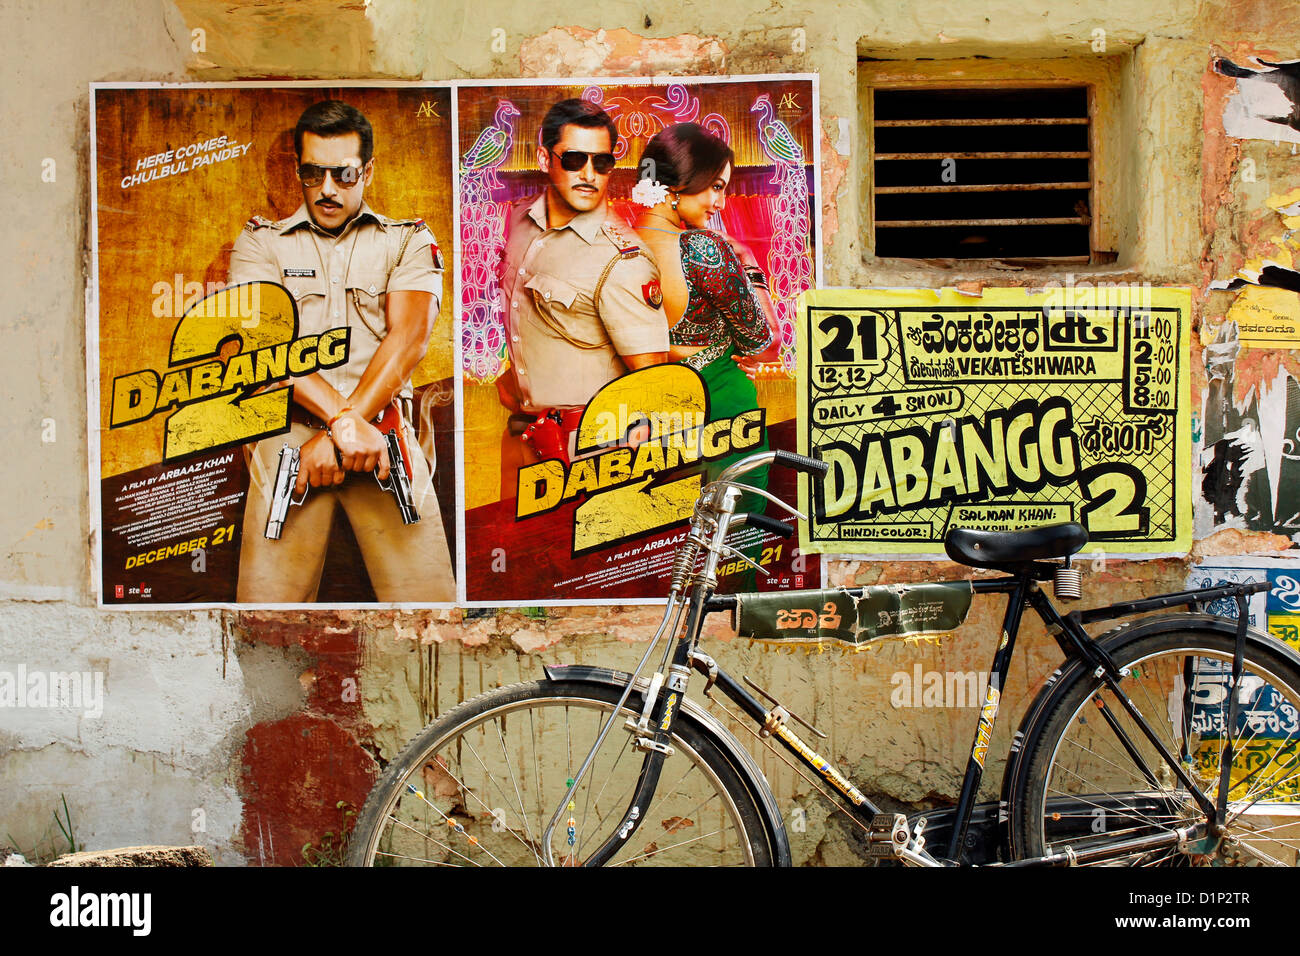 Bollywood-Film-poster Stockfoto